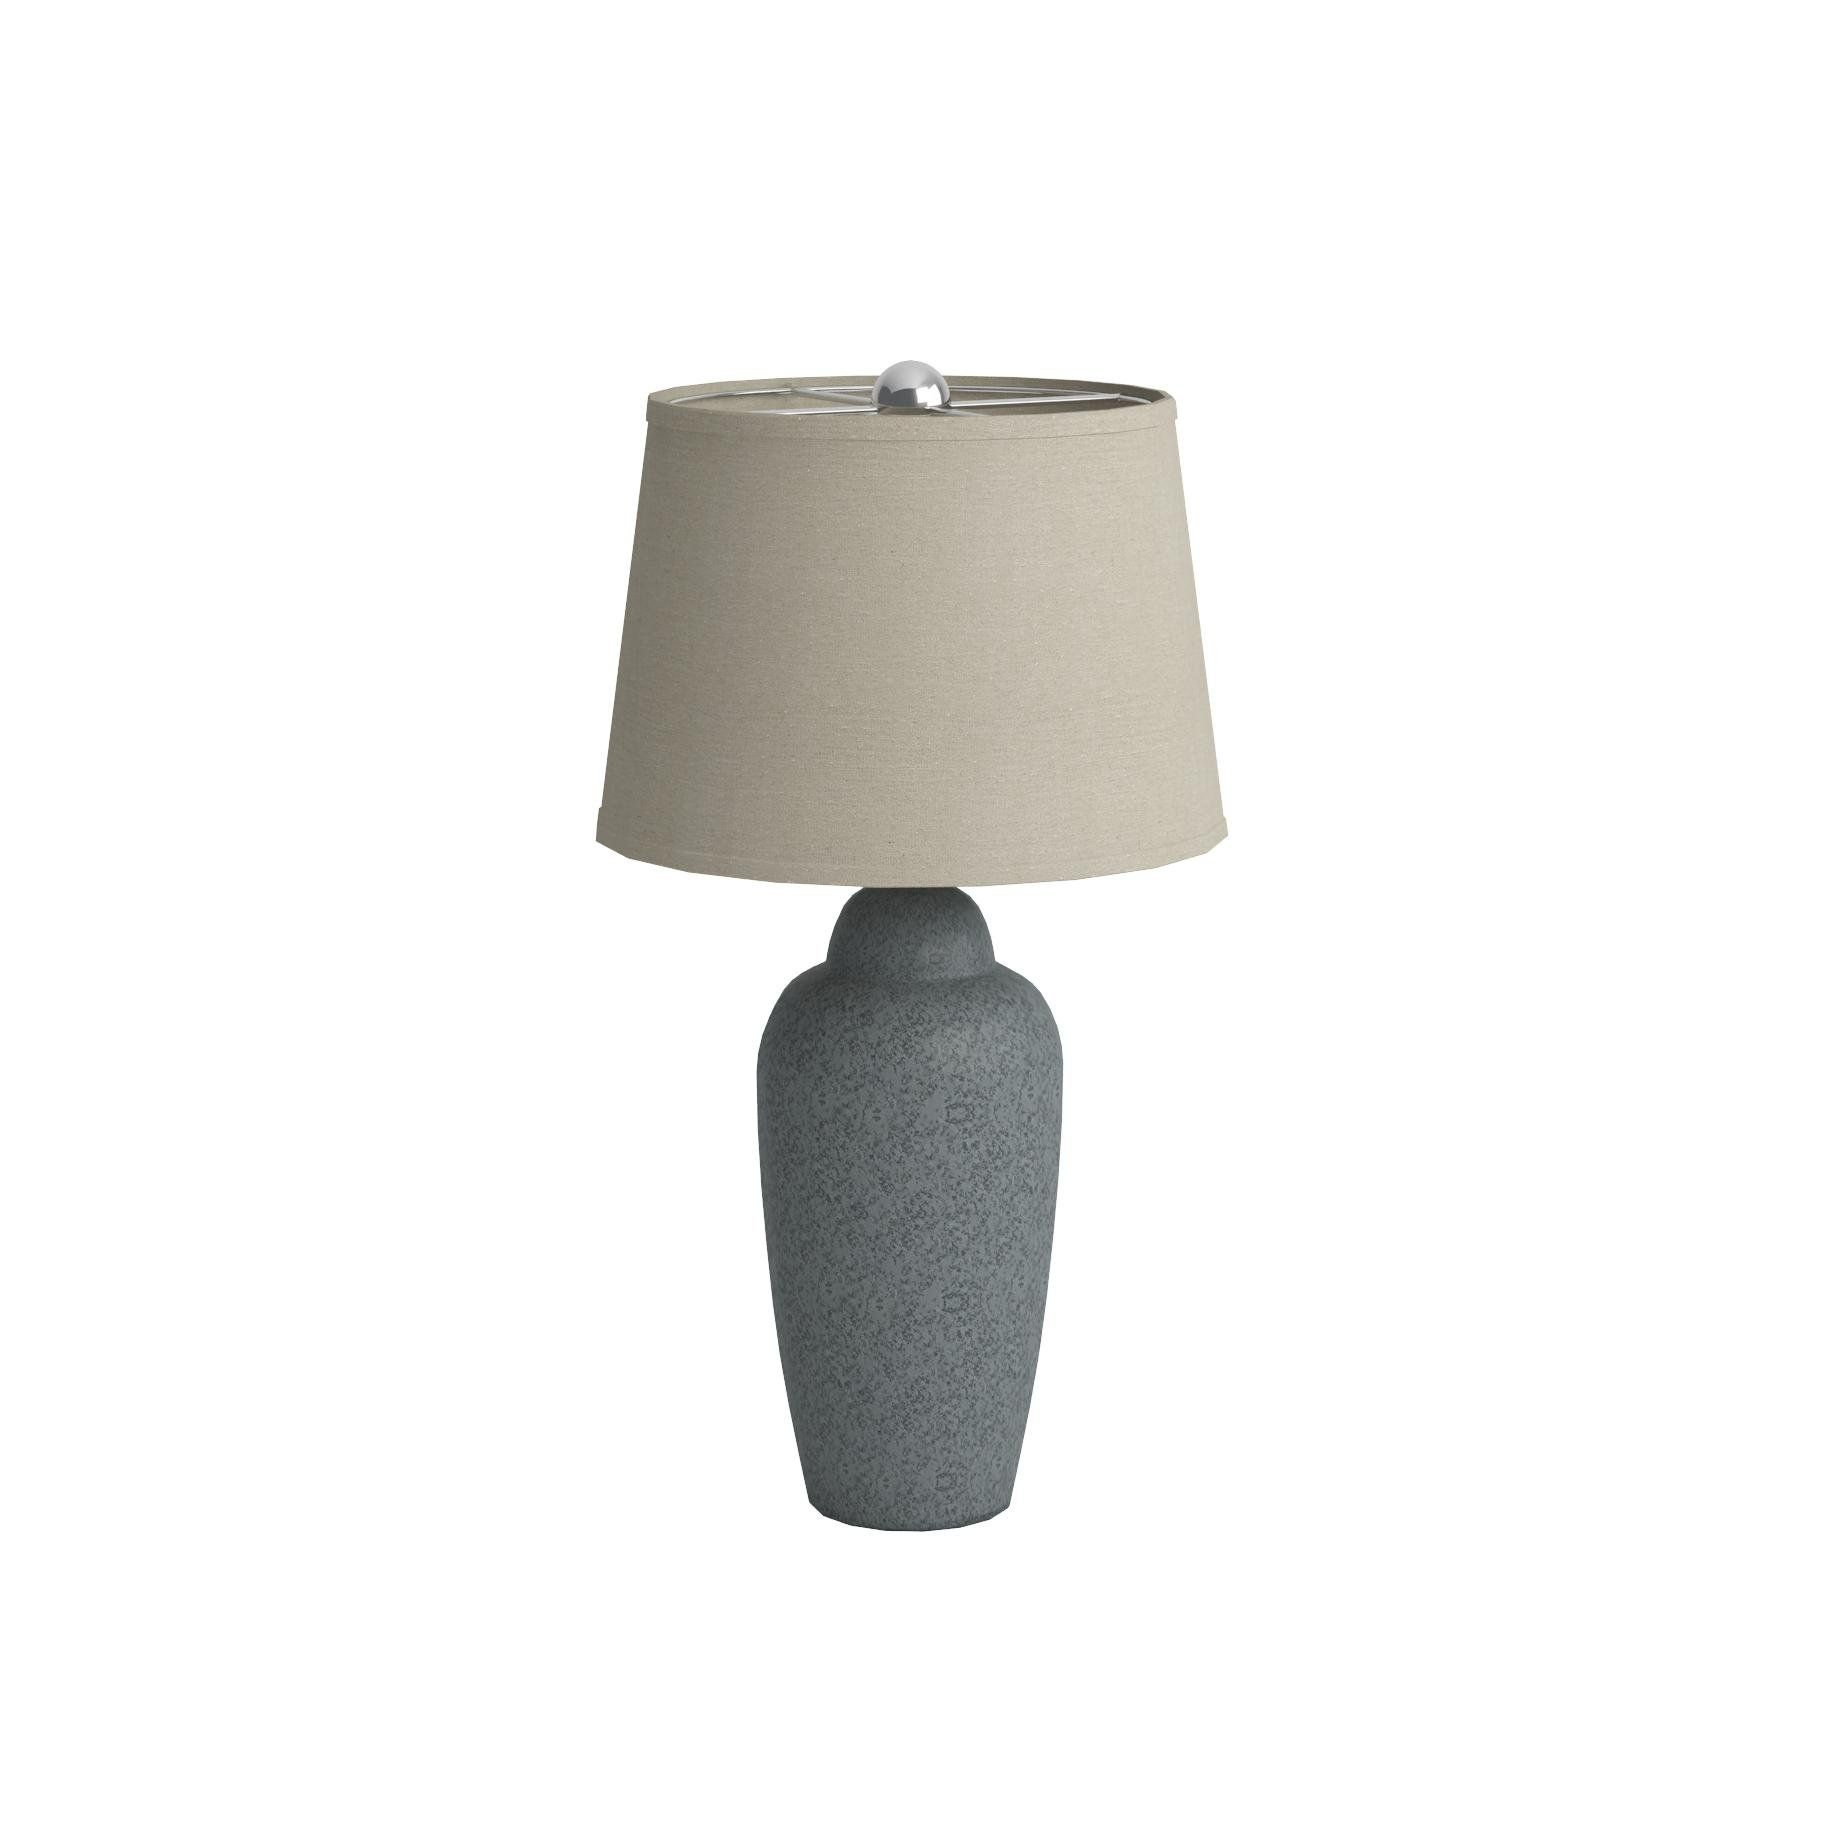 Ashley Furniture Signature Design Saher Ceramic Table Lamp Green Visit The Image Link More Details This Is An Affili Lamp Ceramic Table Lamps Table Lamp